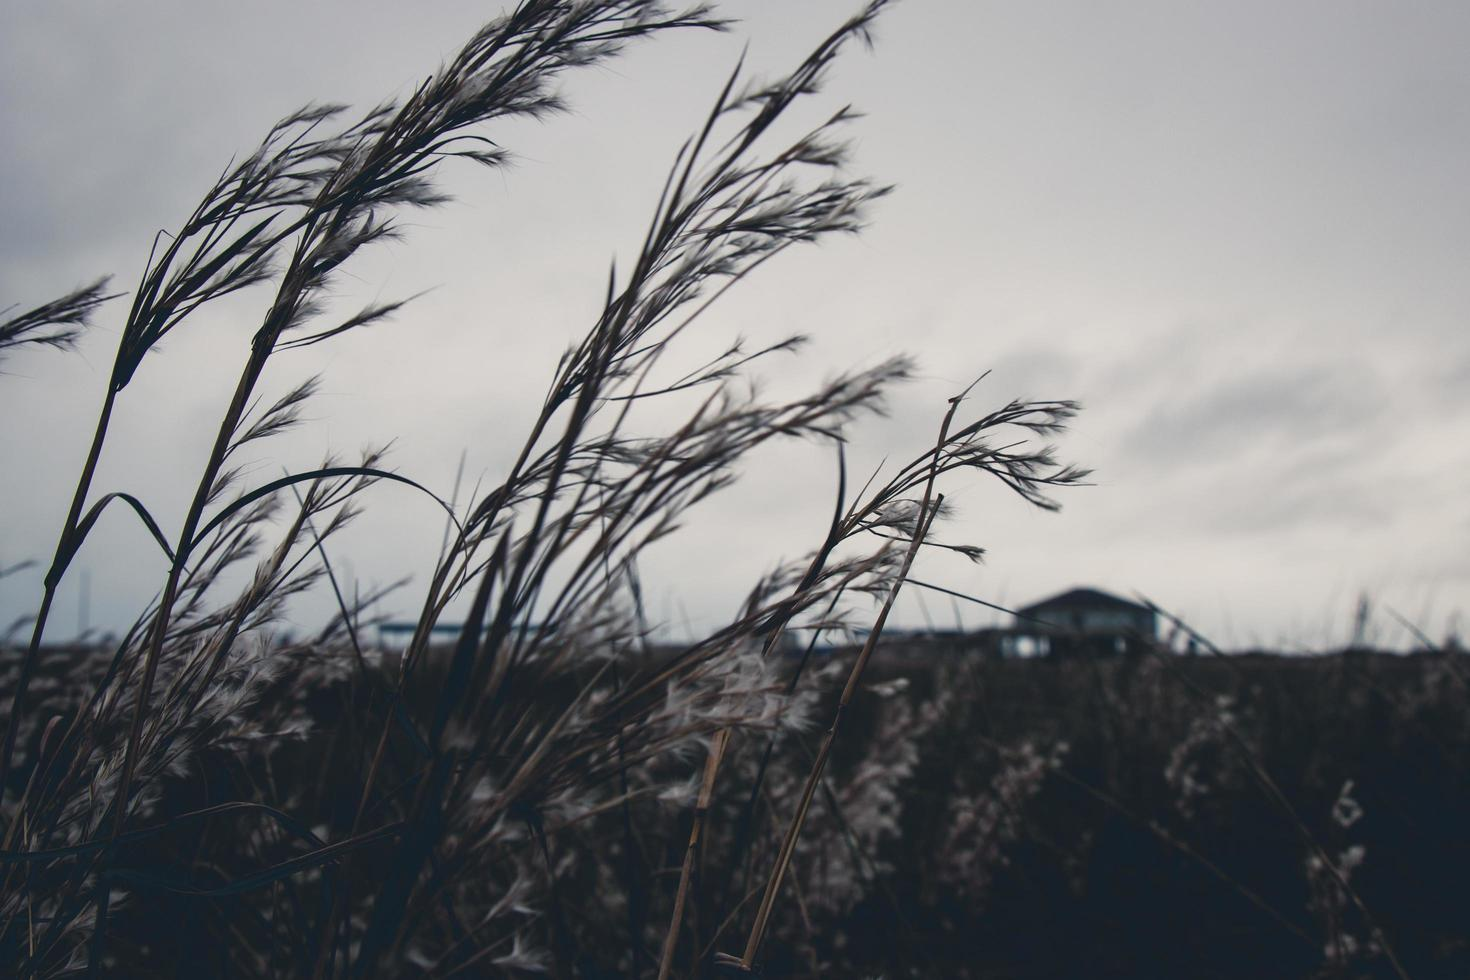 Tall feathered grass in a field photo